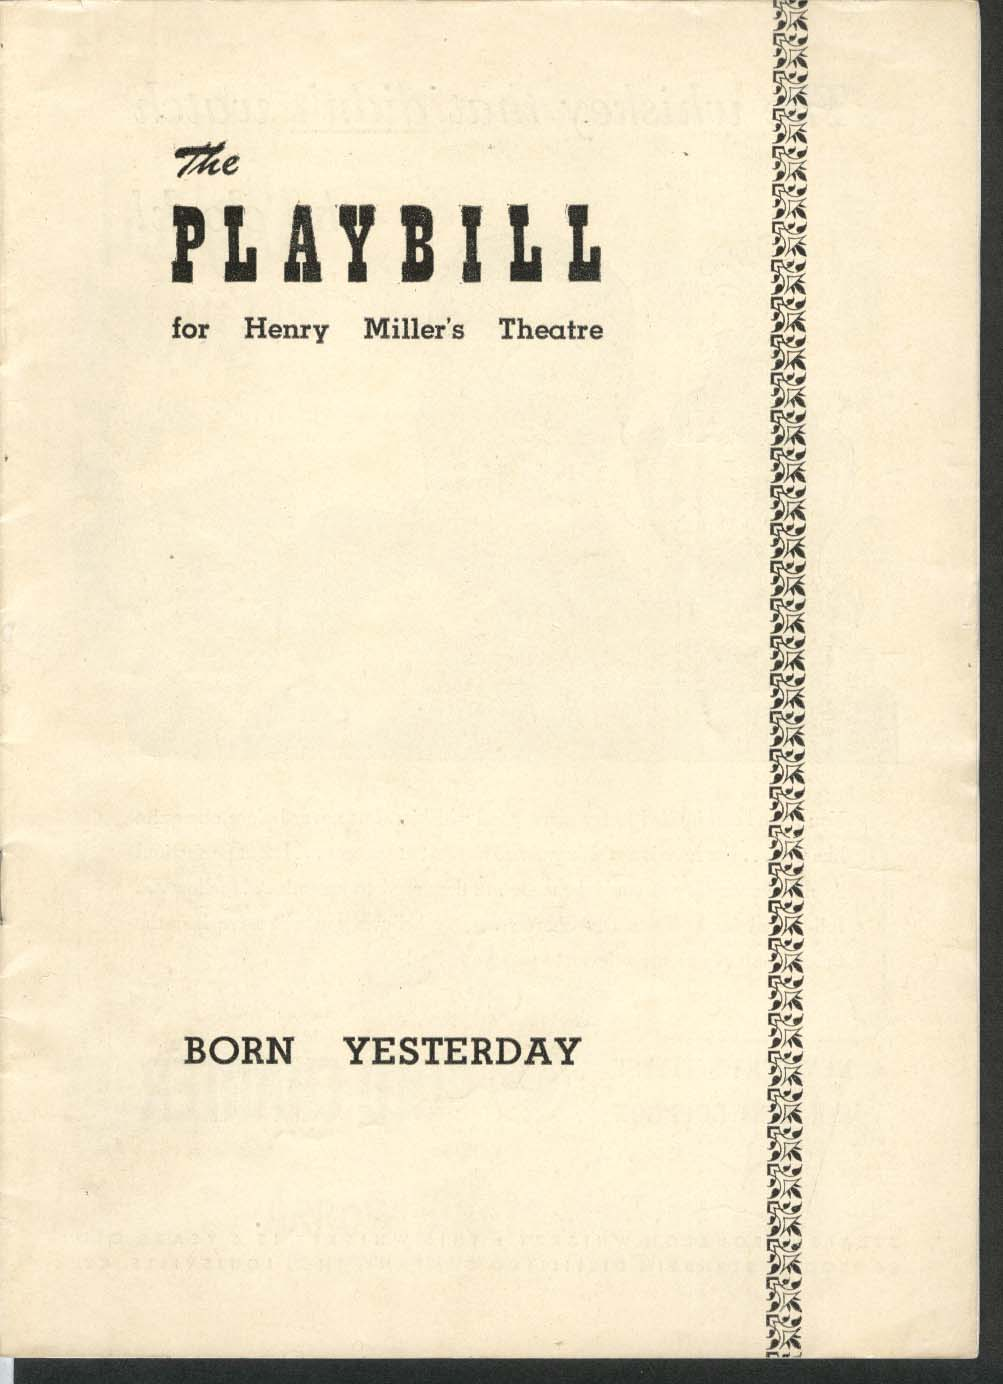 Born Yesterday Playbill 8/15/49 Paul Verrall Larry Oliver Frank Otto Ellen Hall